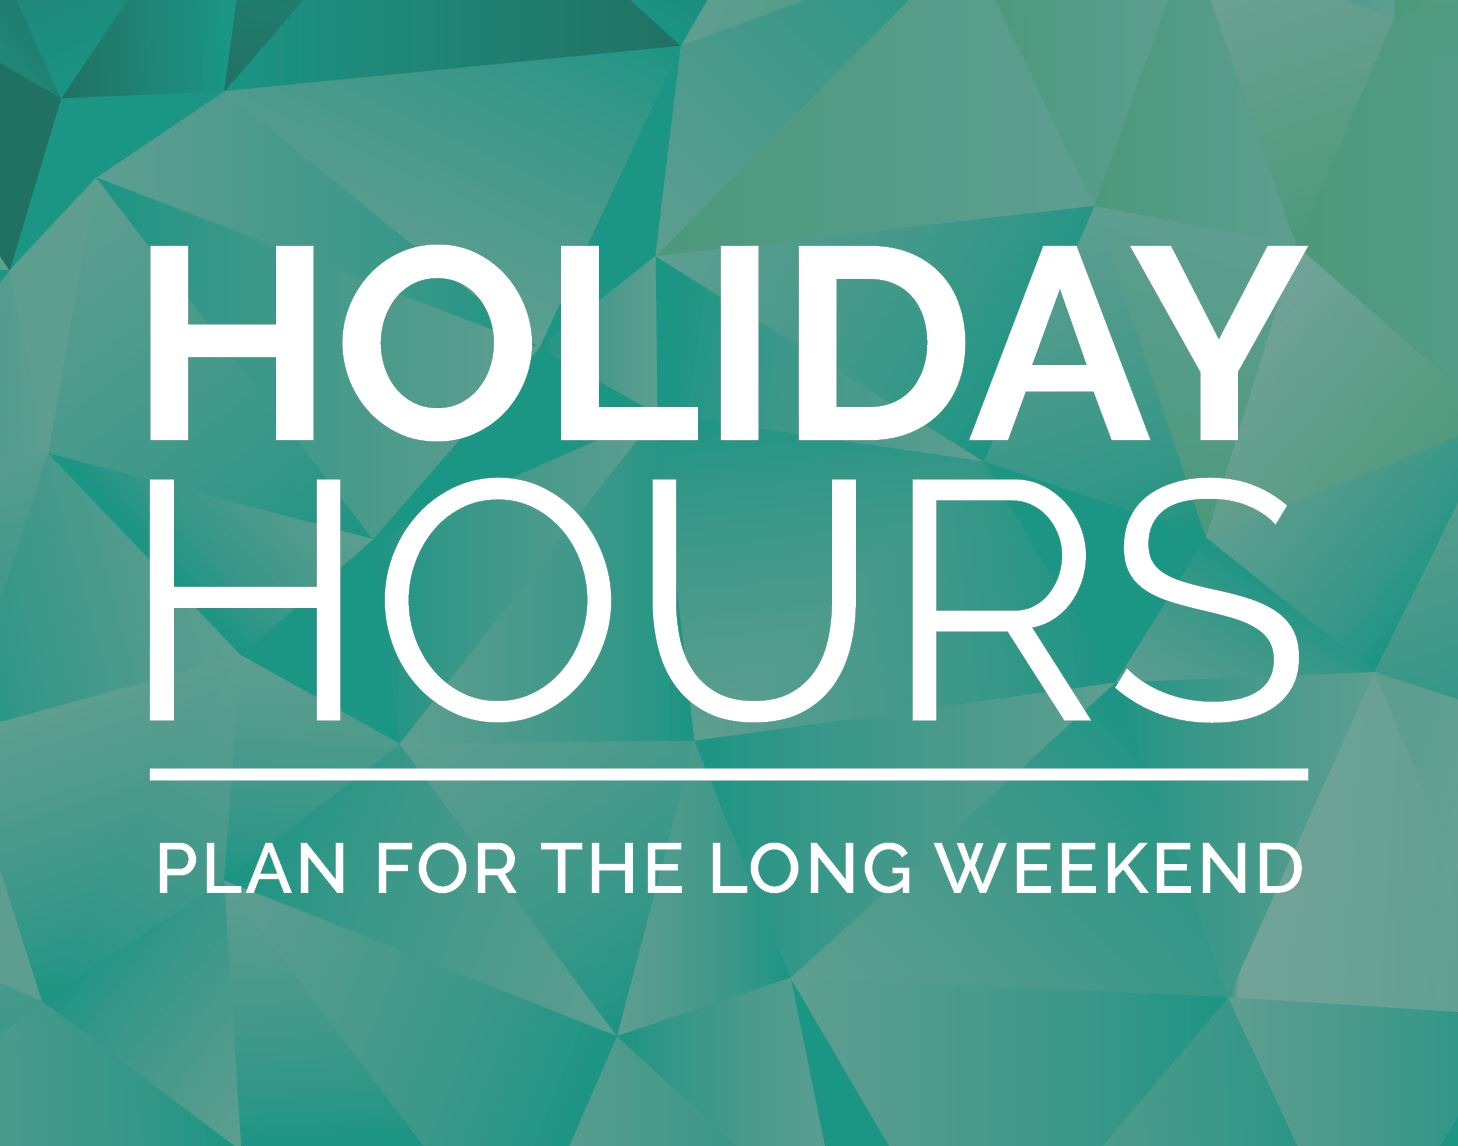 Holiday Hours April 2019